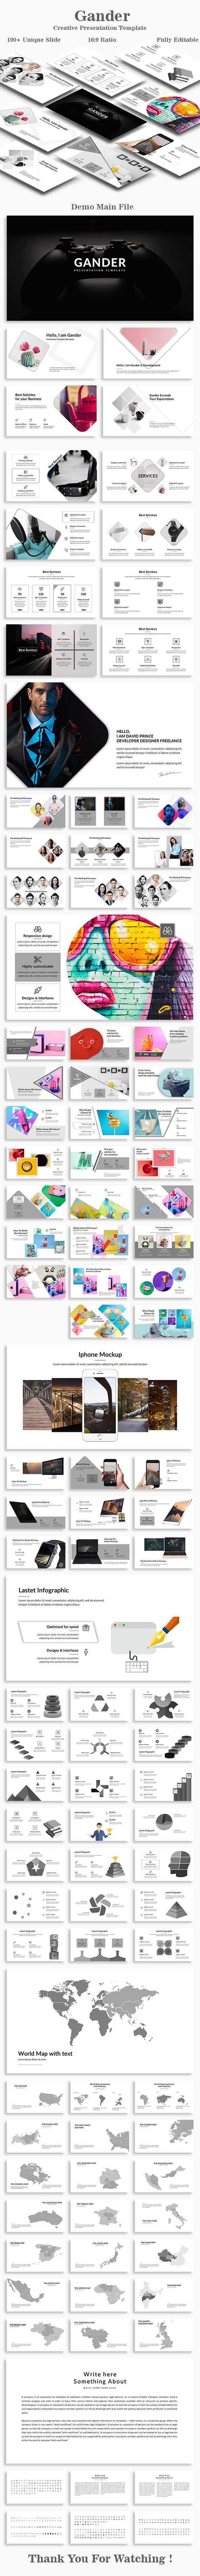 Gander Creative Google Slide Template - Google Slides Presentation Templates